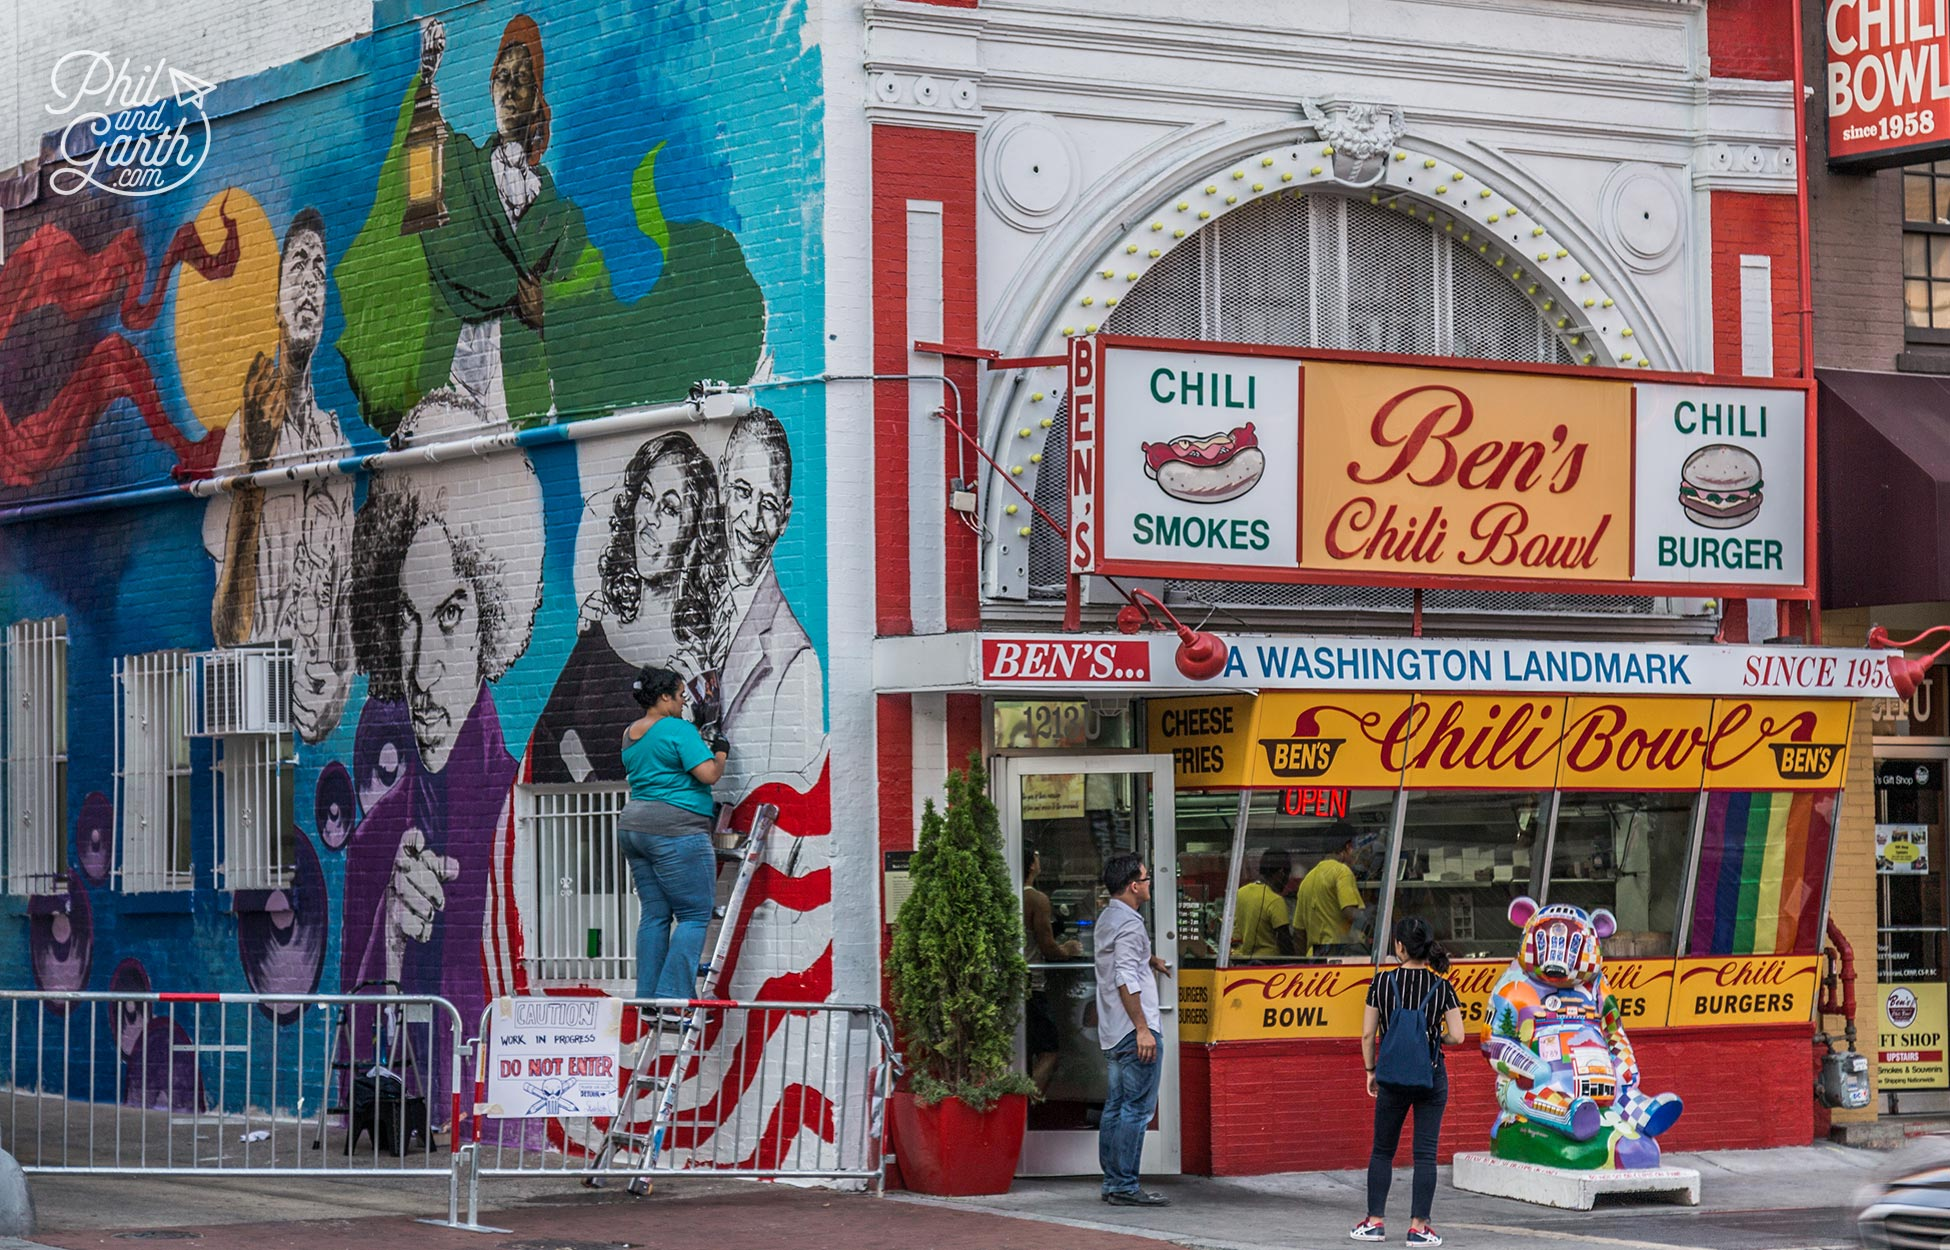 Bens Chili Bowl opened in 1958